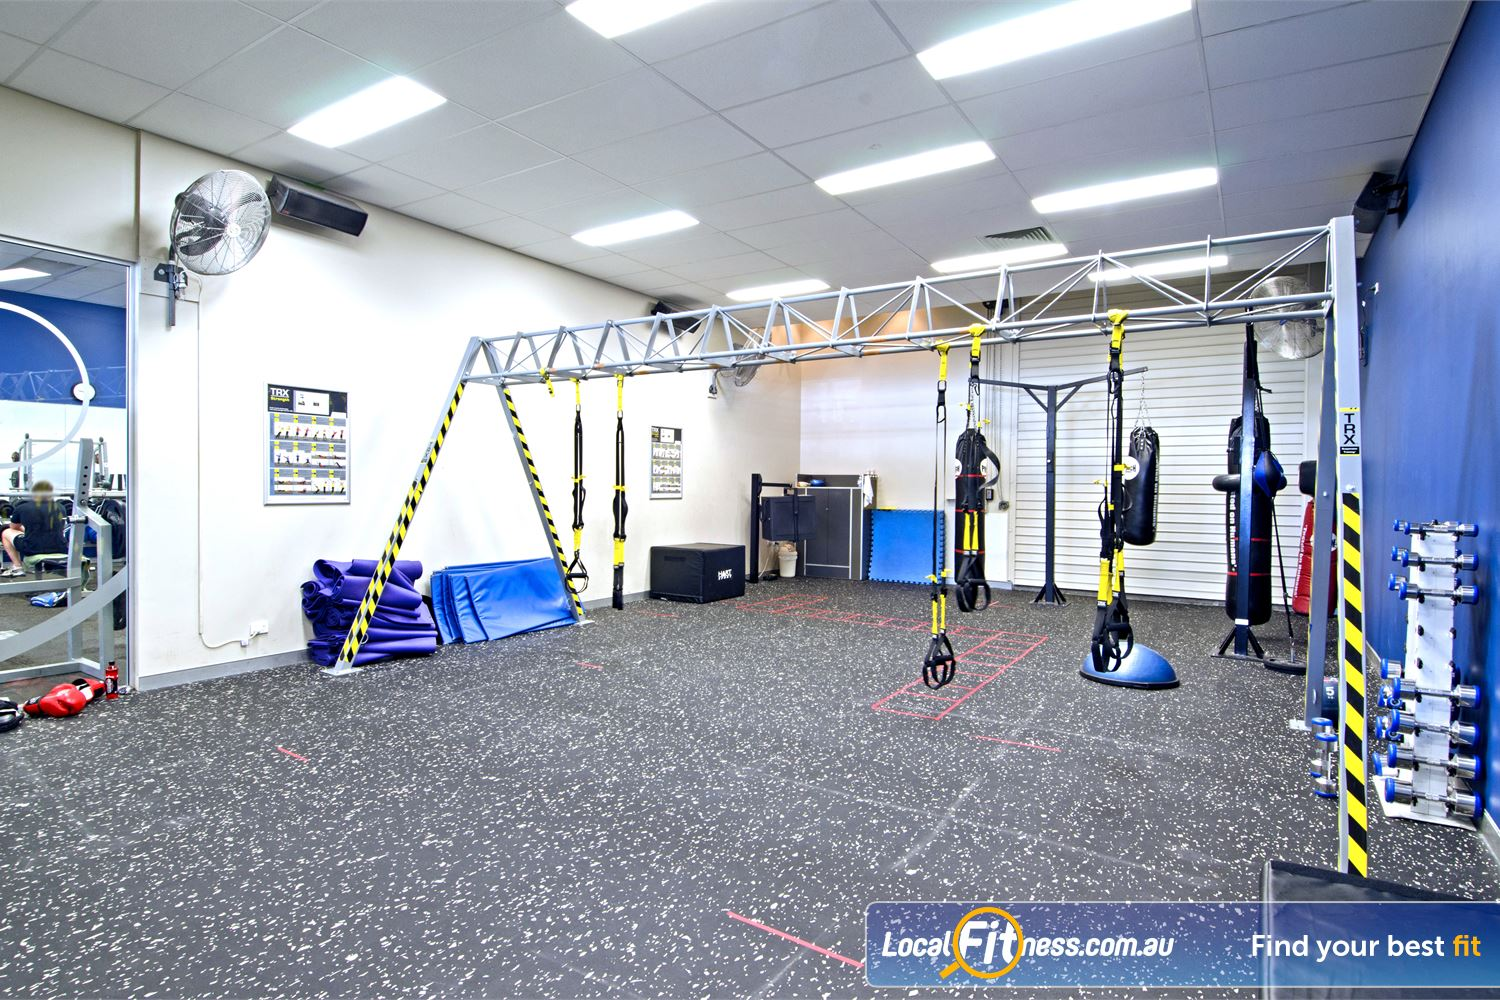 Goodlife Health Clubs Near Coochiemudlo Island Our dedicated functional training area at Goodlife Cleveland.